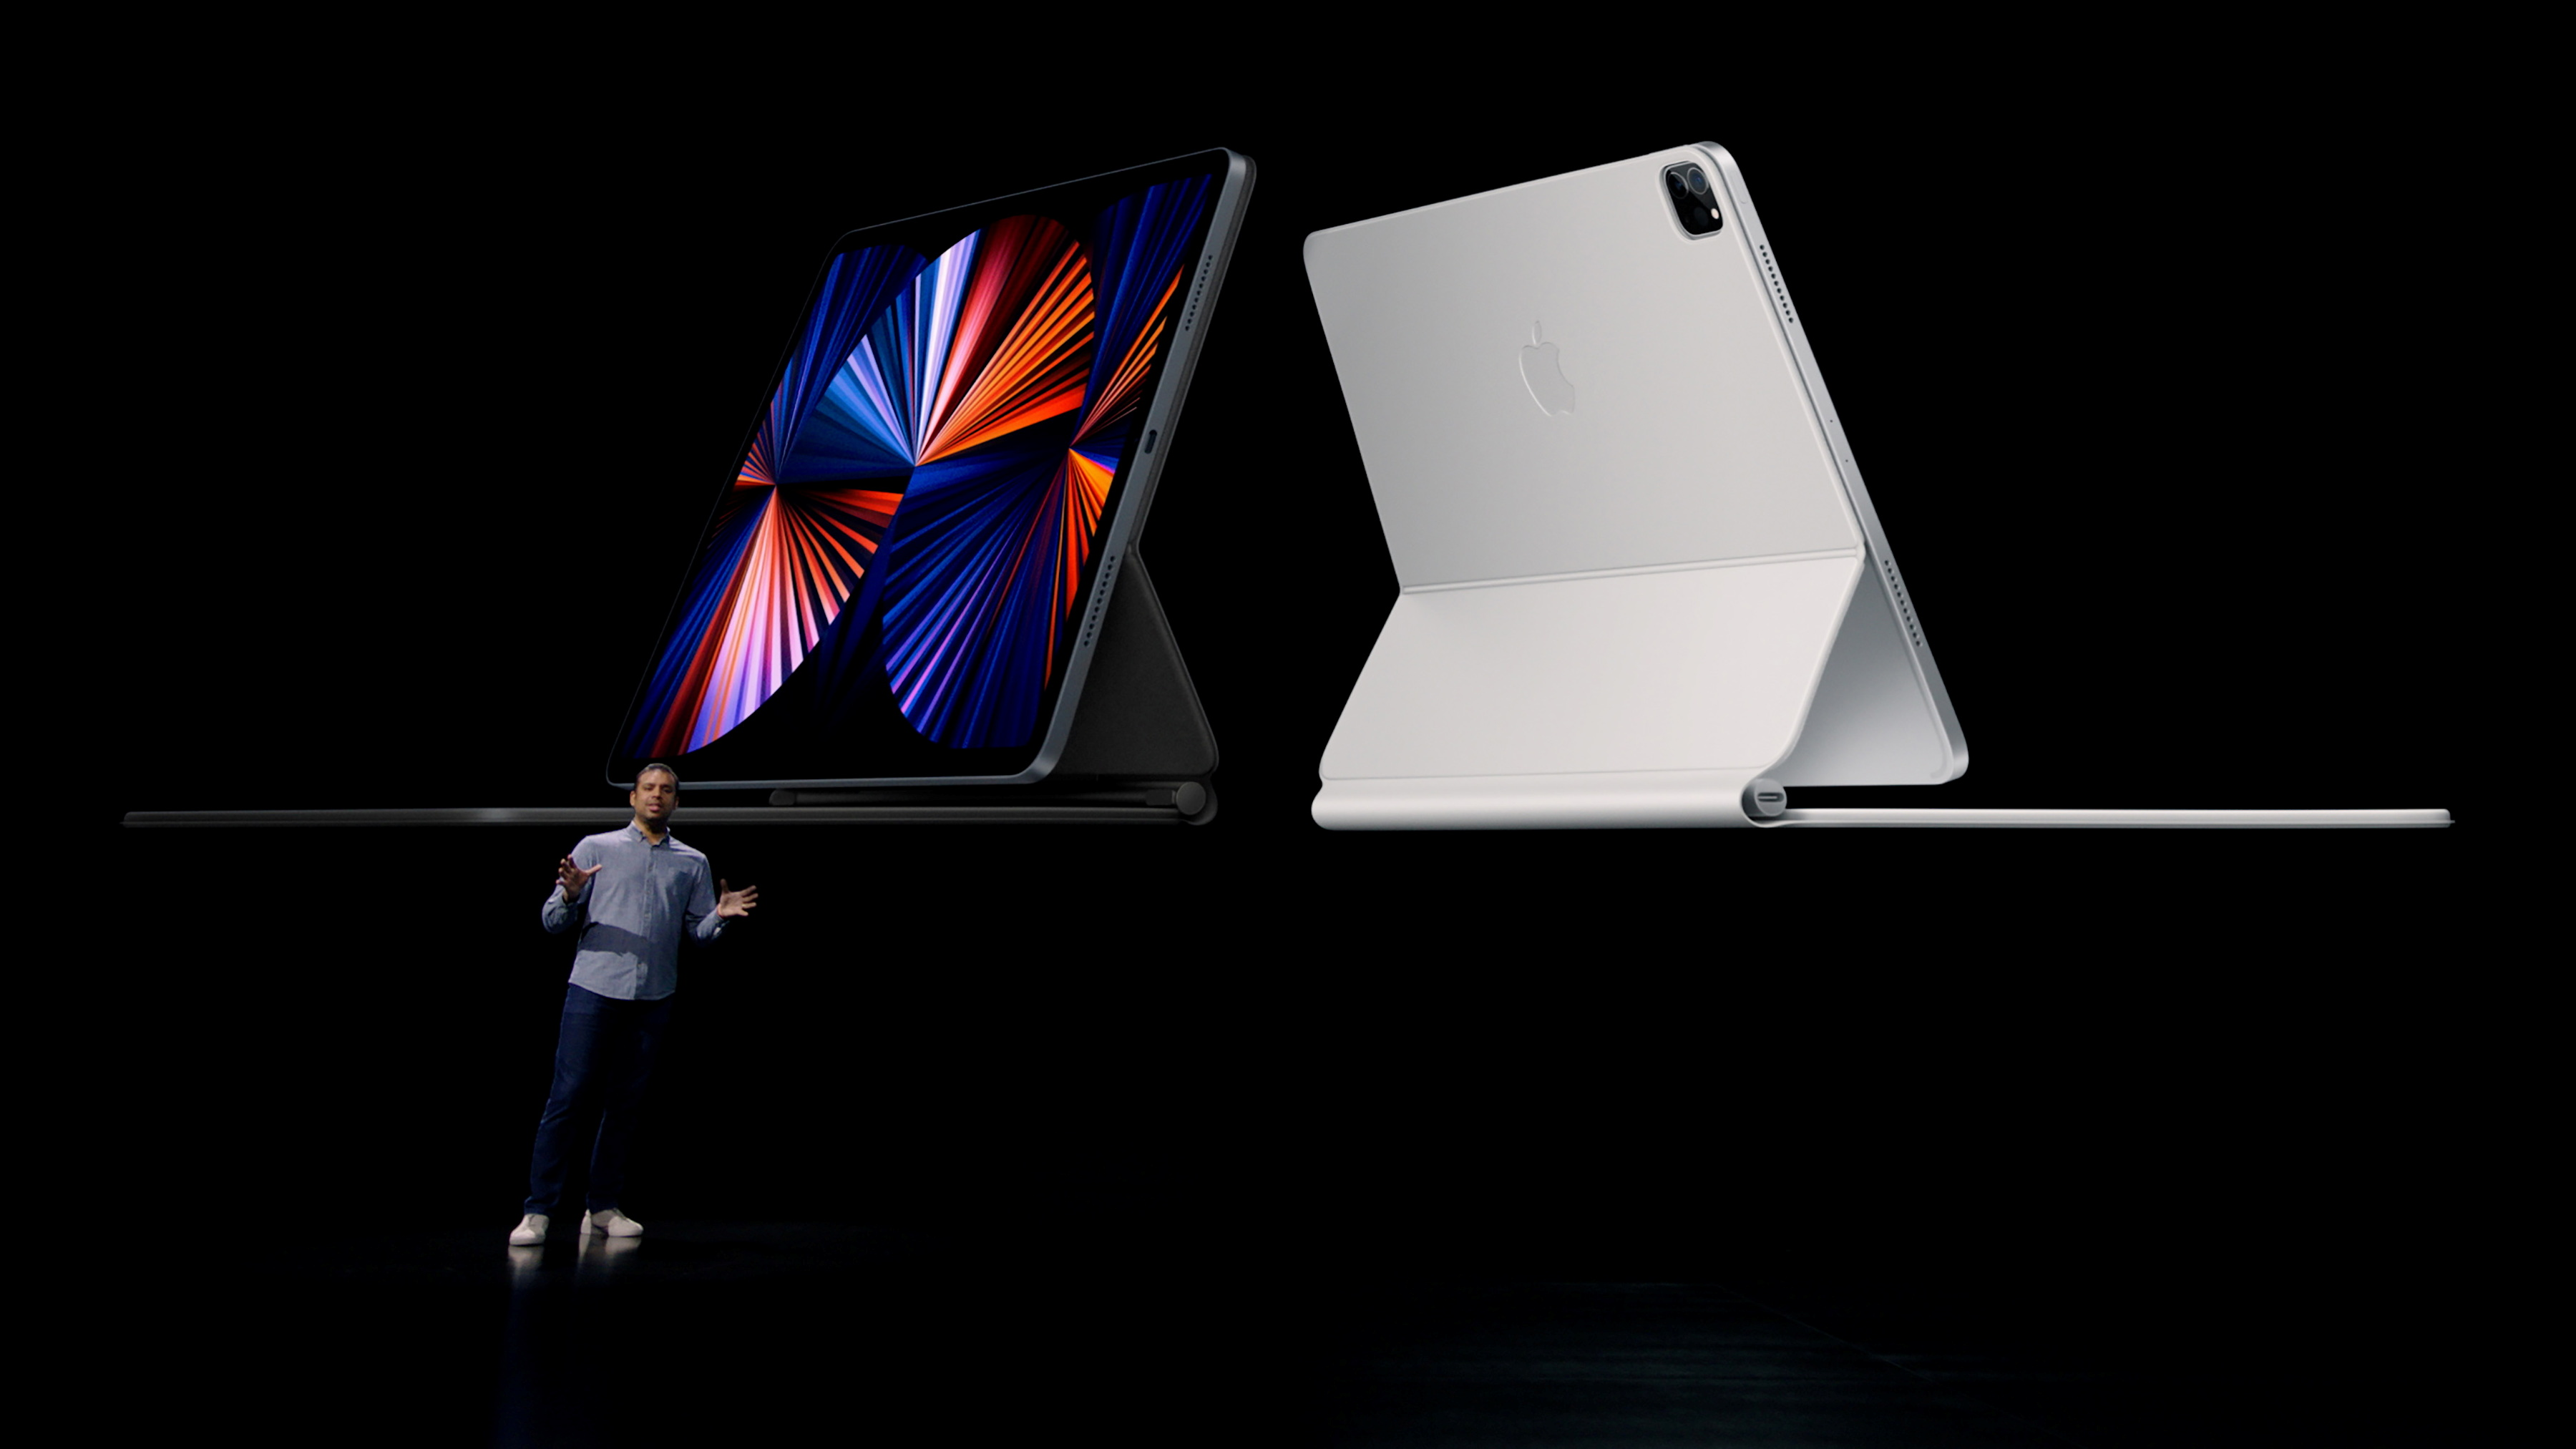 Apple?s Raja Bose announces the new iPad Pro, in this still image from the keynote video of a special event at Apple Park in Cupertino, California, U.S. released April 20, 2021. Apple Inc./Handout via REUTERS.